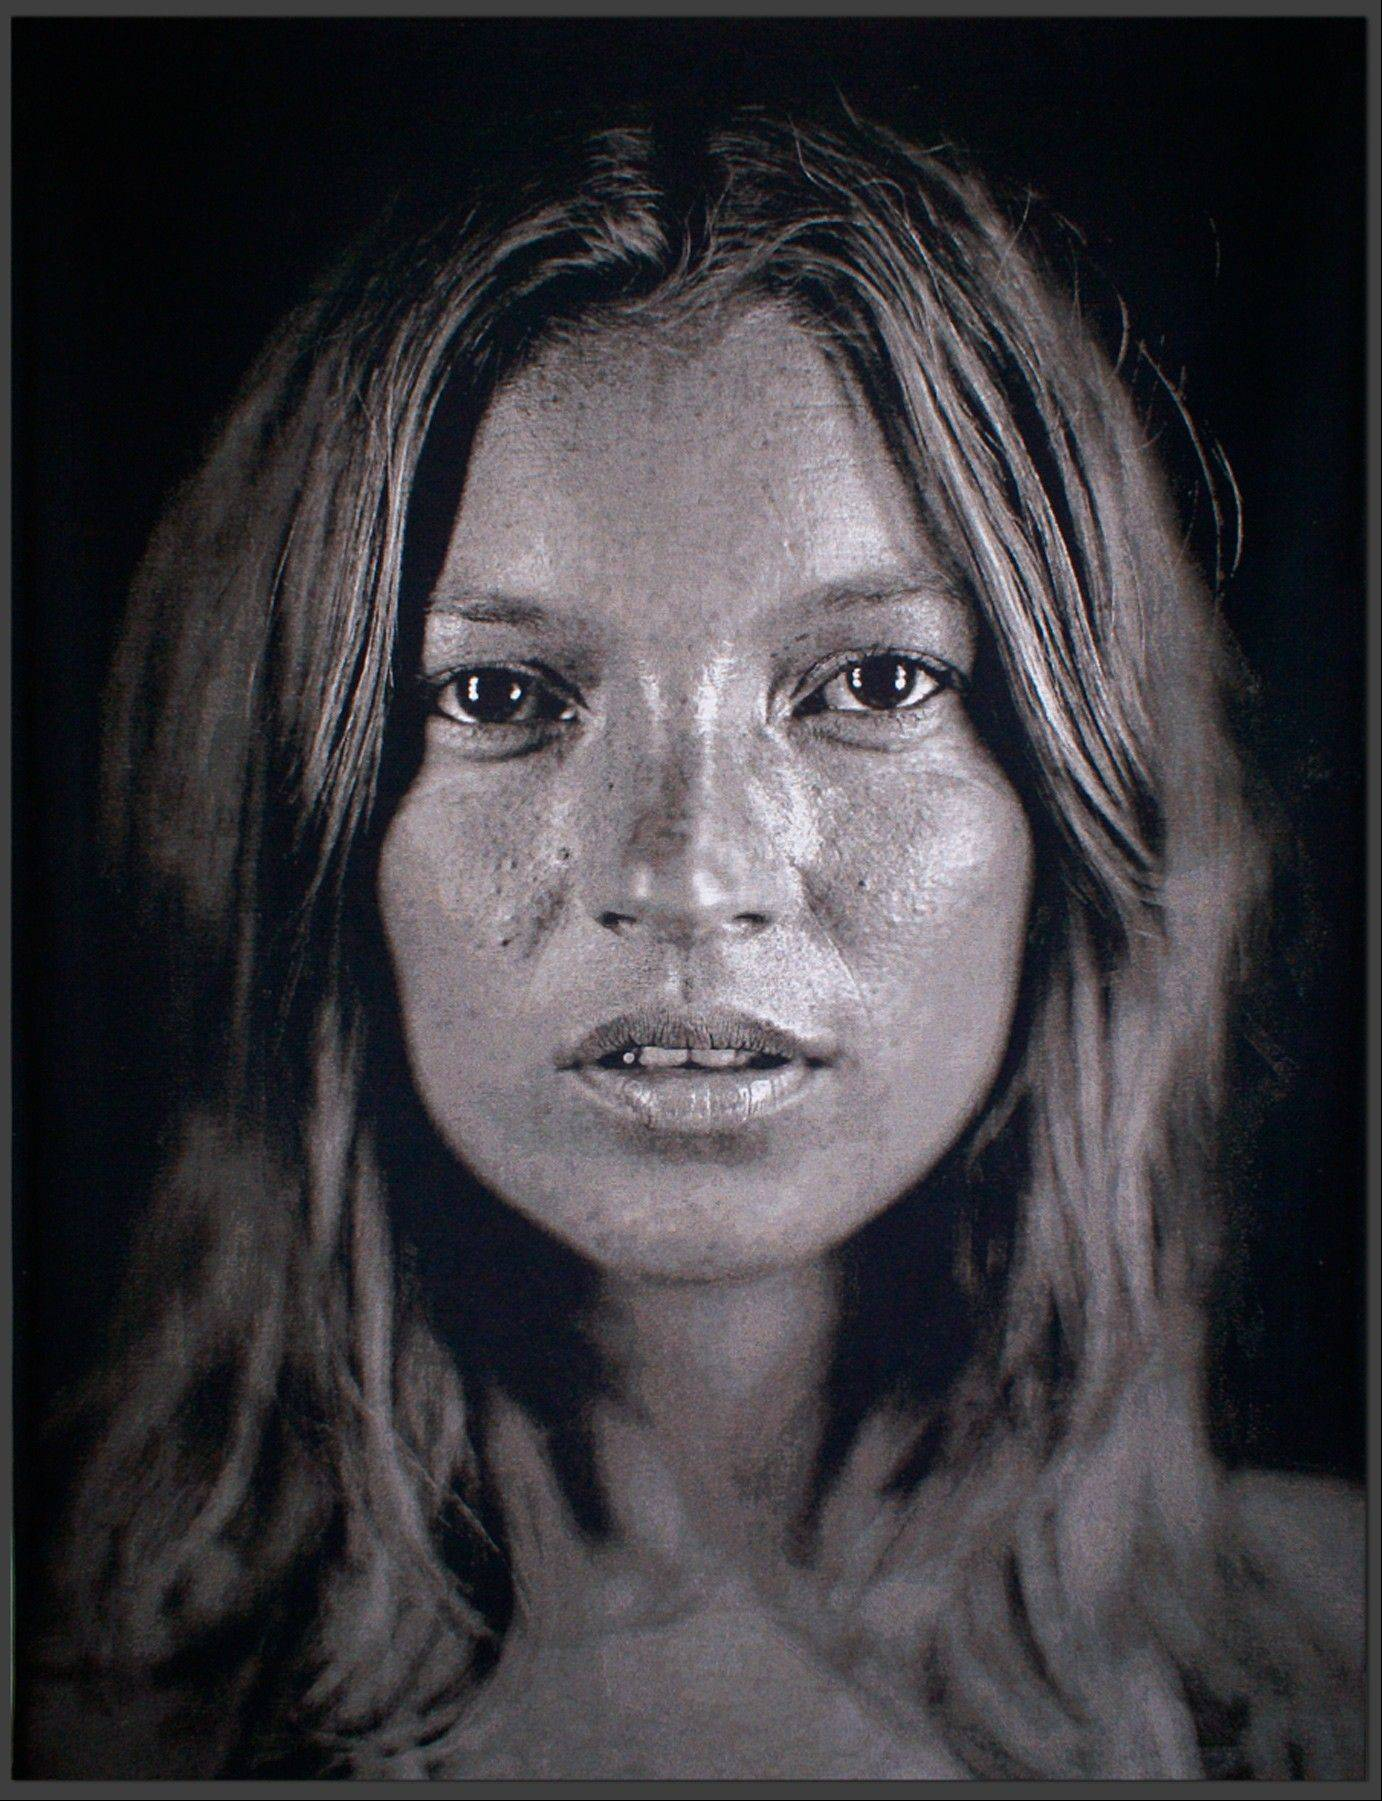 This image made available by Christie's auction house on Wednesday July 3, 2013 shows an image of British model Kate Moss, 'Kate', 2007 by Chuck Close. Few people have been photographed more often than Kate Moss, and some of the most famous images of the supermodel are going under the hammer at a Christie's auction in London on Sept. 25.